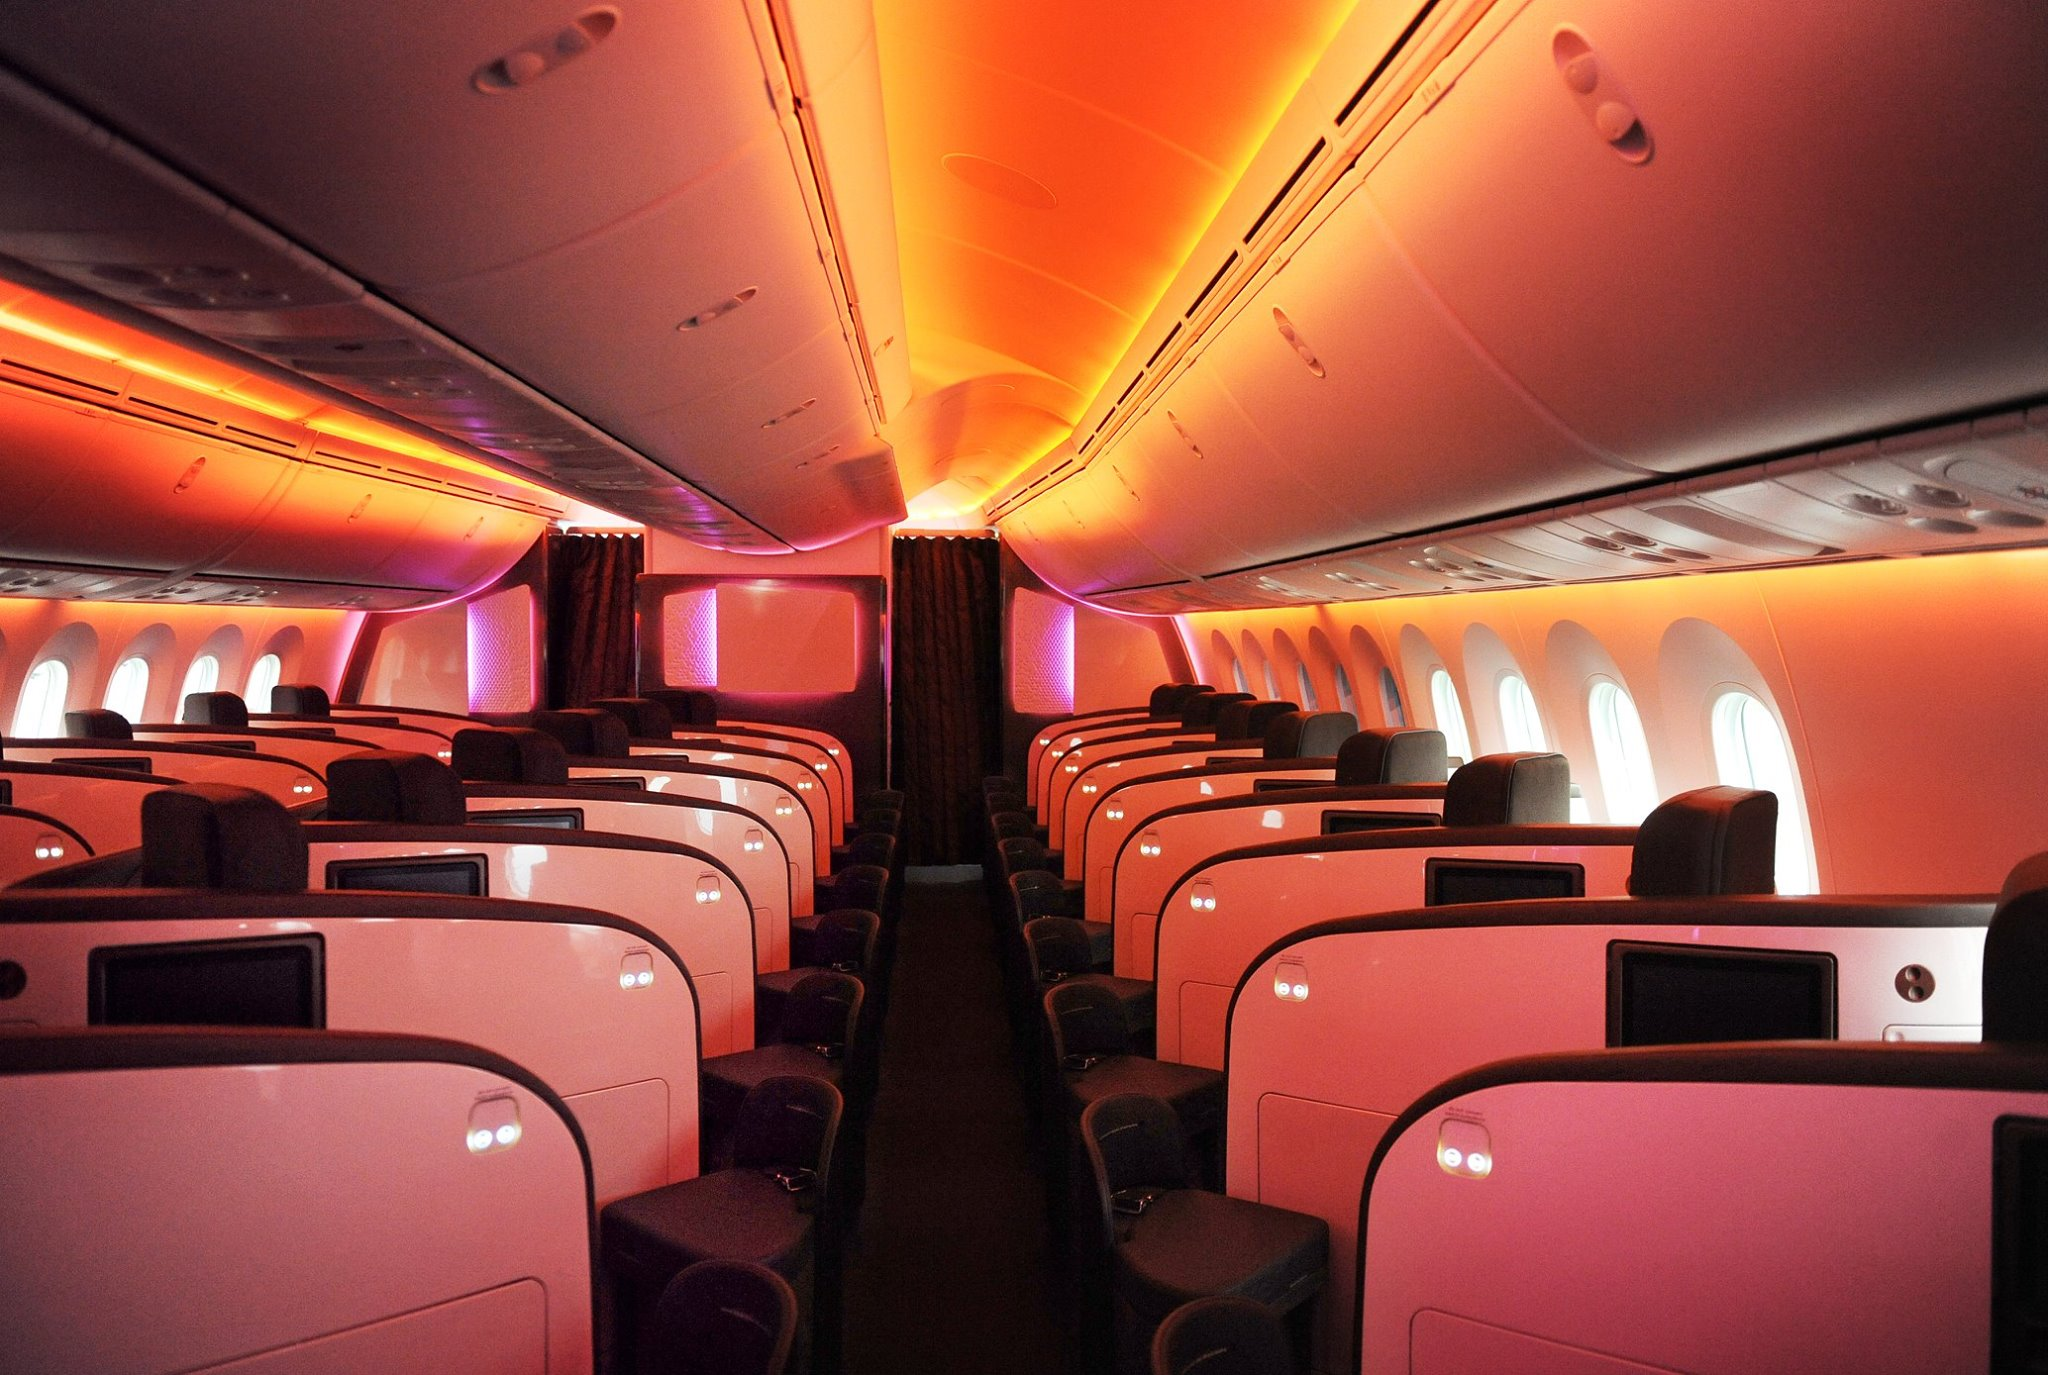 The Dreamliner's cabin lights can be dimmed to facilitate relaxation. Picture:  Virgin Atlantic